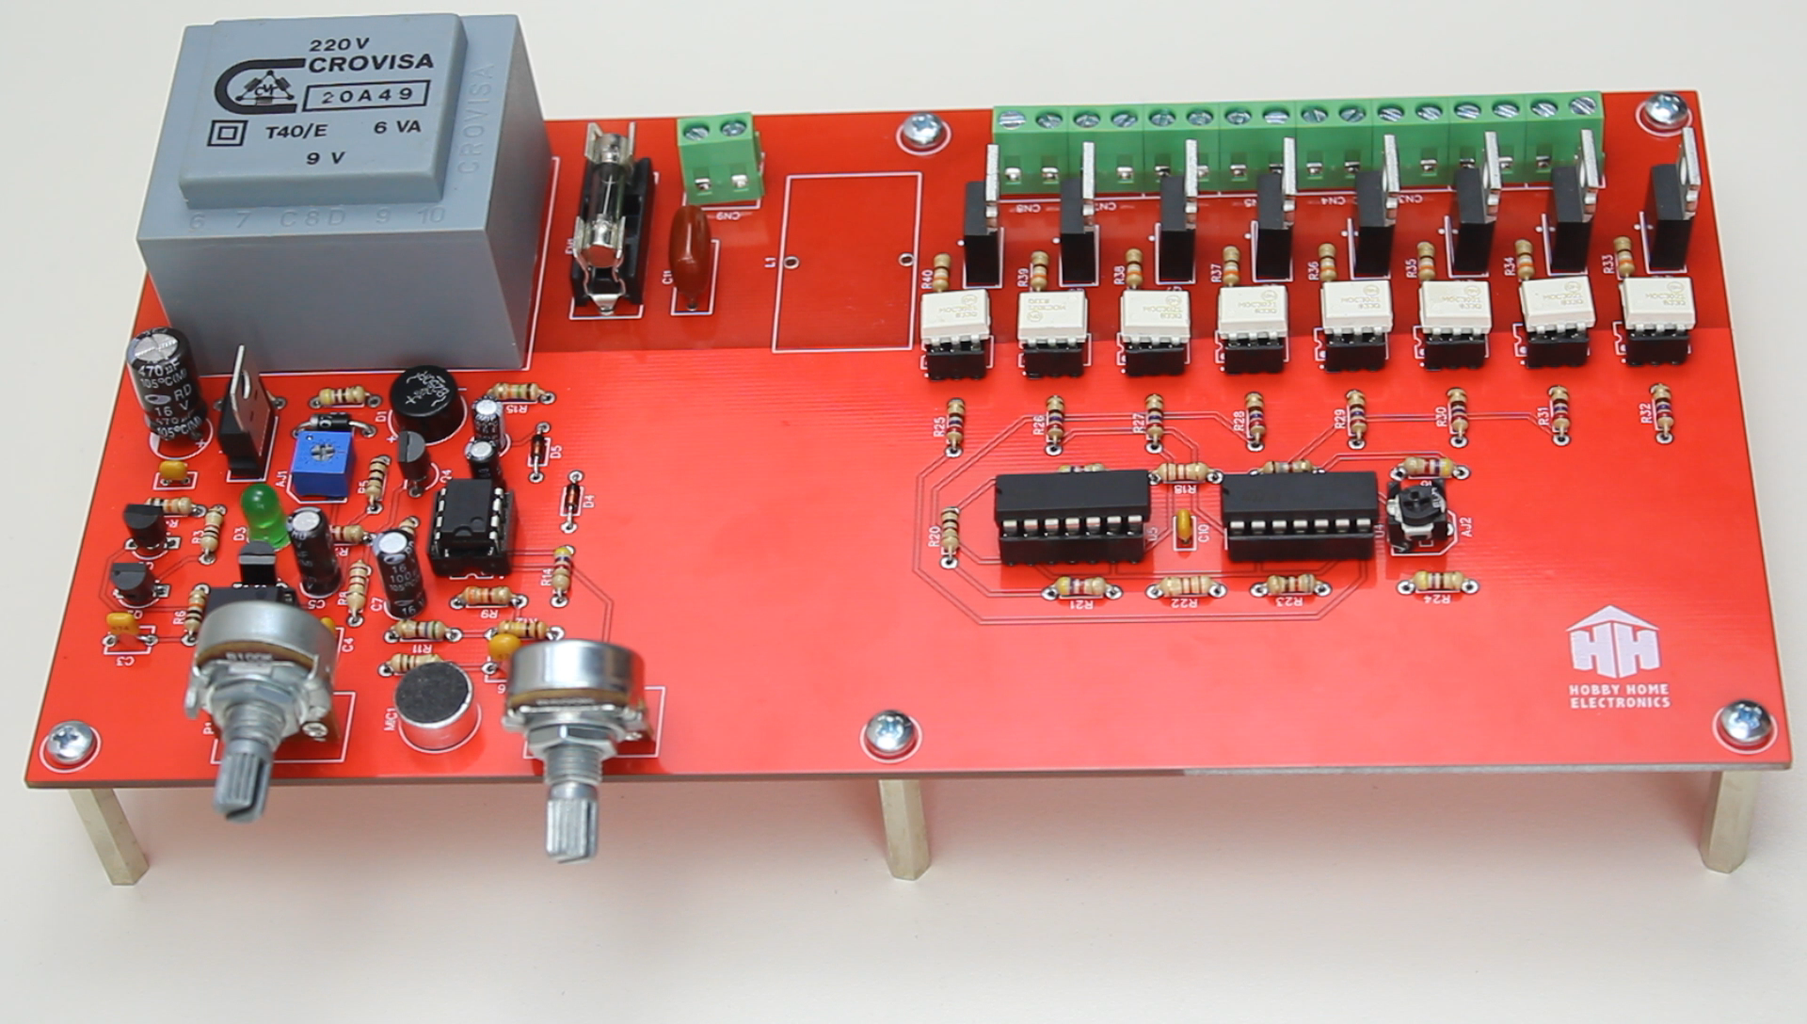 Installation of Radio Components on the Control PCB.